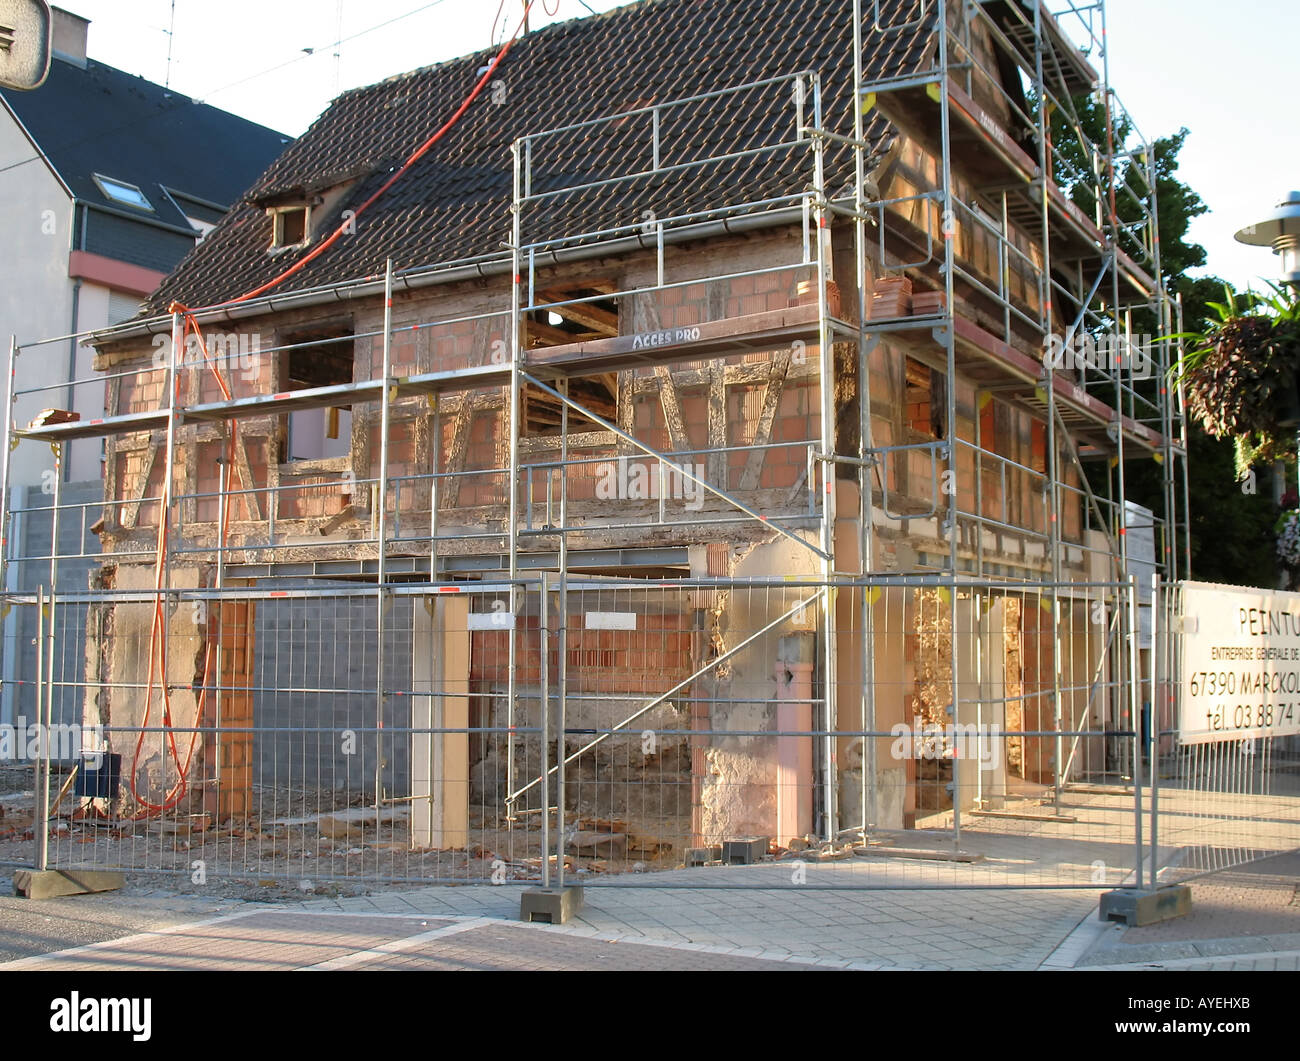 Half-timbered house on renovation, scaffoldings, protection fences, Marckolsheim village, Alsace, France - Stock Image